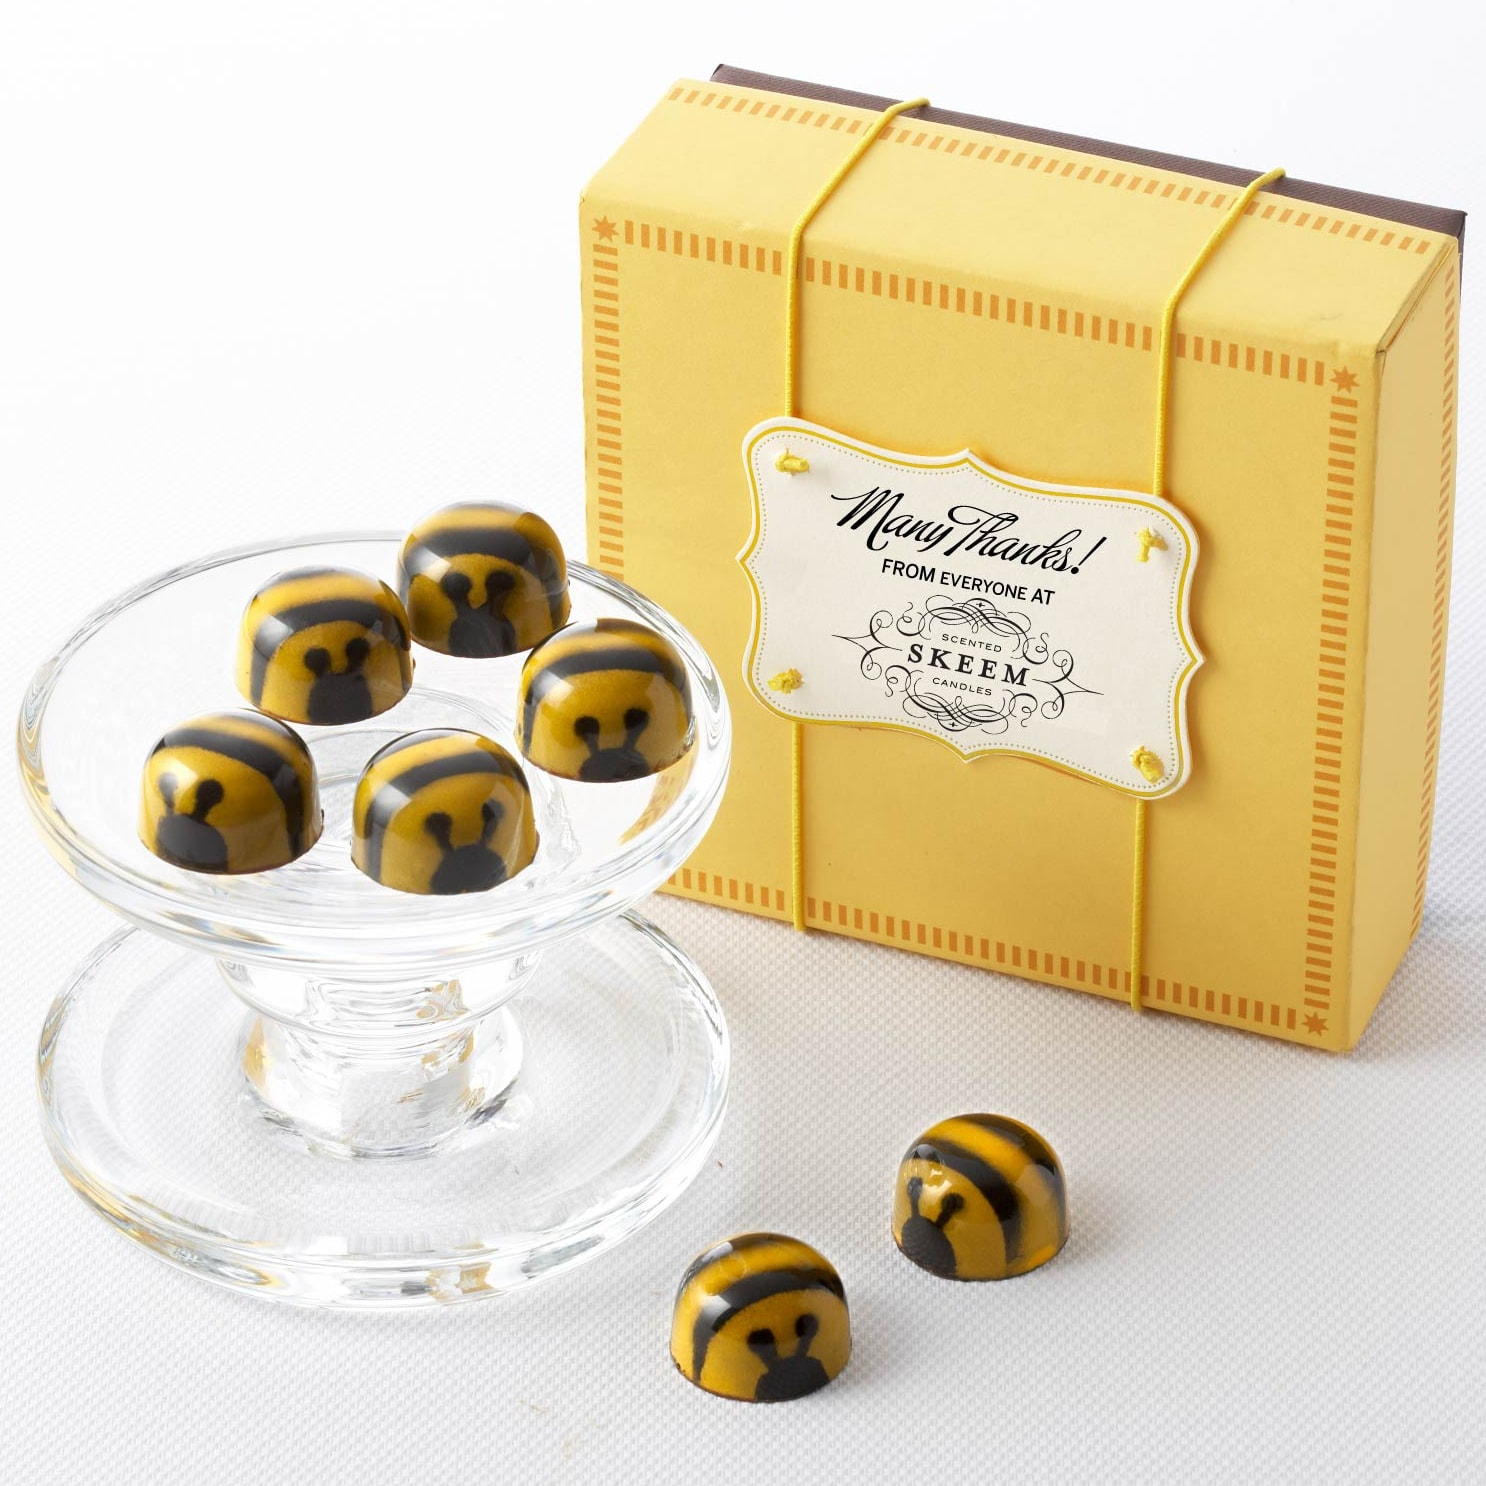 Chocolate Bees - Corporate Gifts